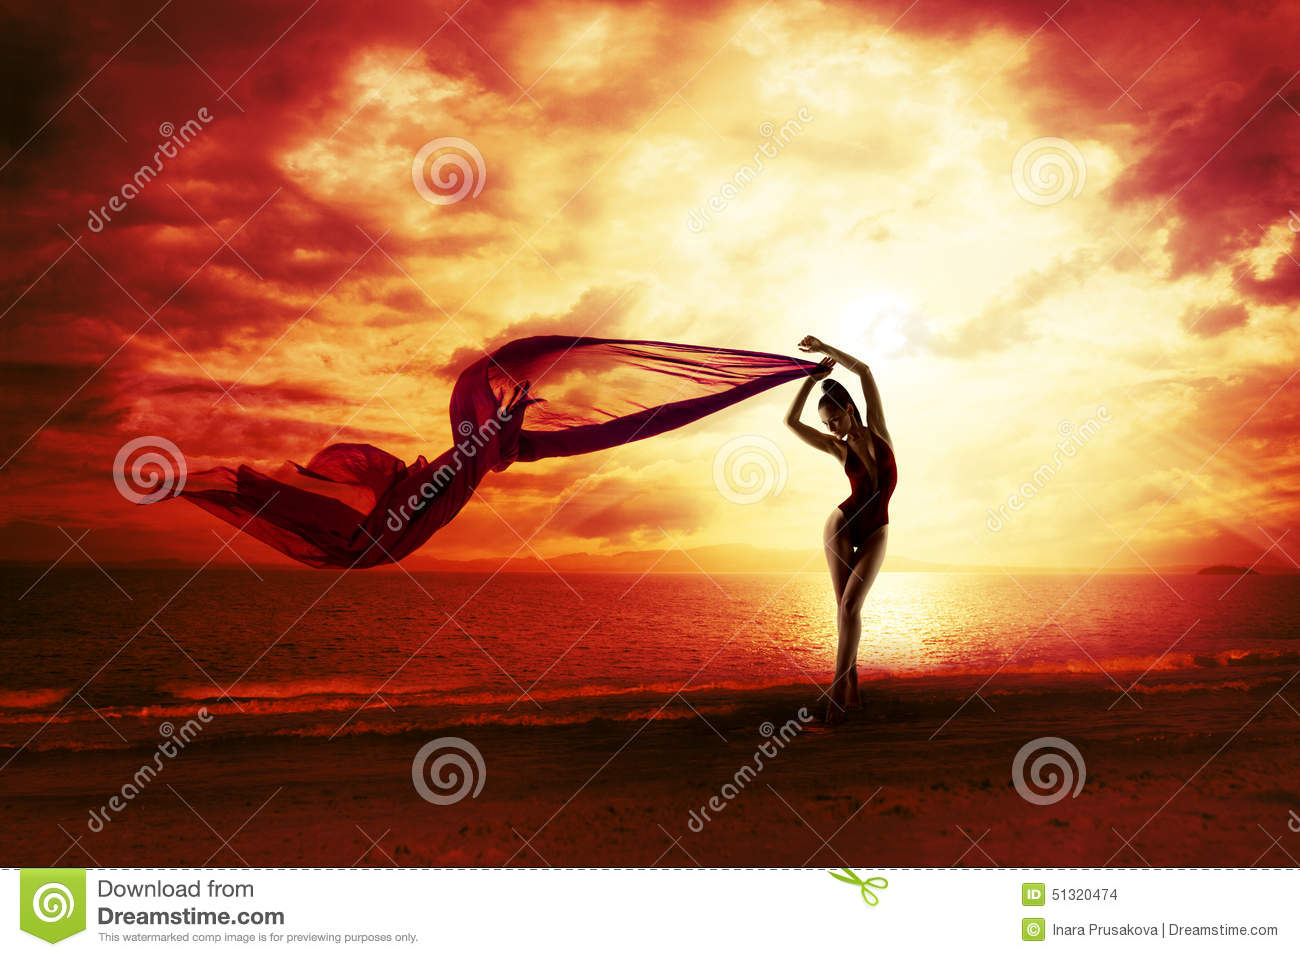 Woman Silhouette over Red Sunset Sky, Sensual Female Beach